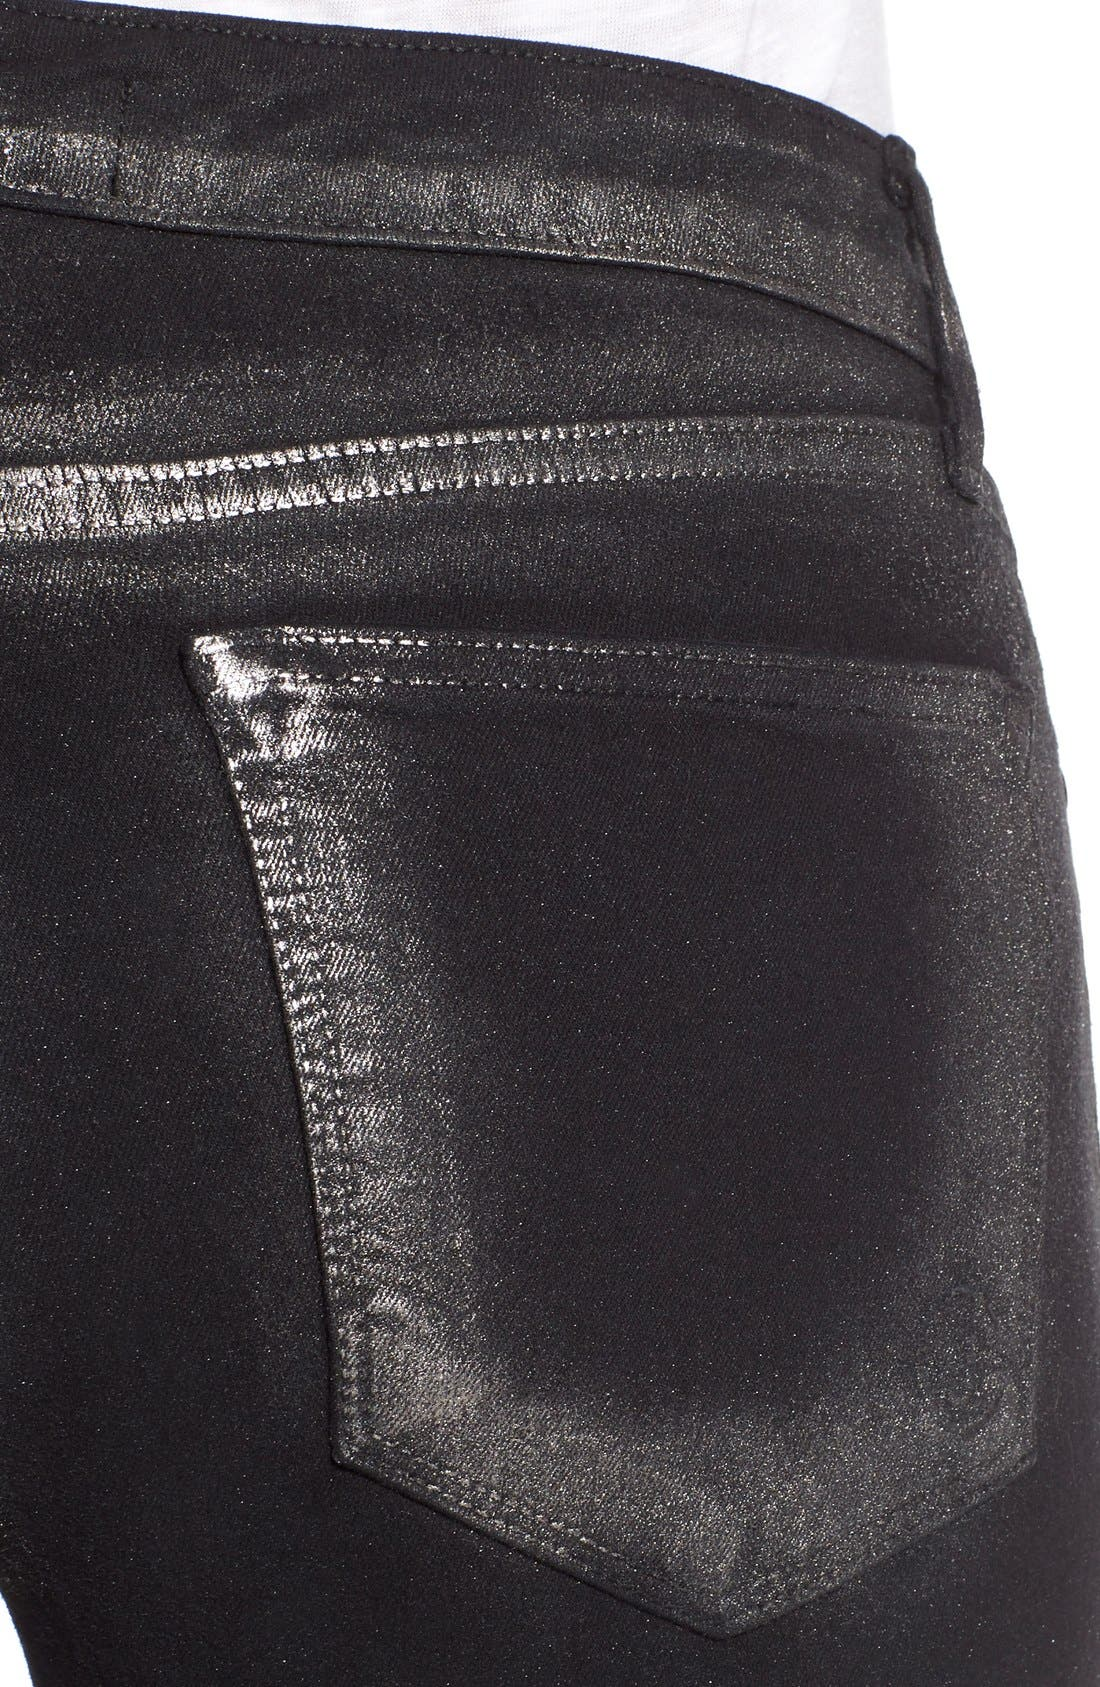 Alternate Image 4  - CJ by Cookie Johnson 'Wisdom' Brushed Foil Skinny Jeans (Pewter)